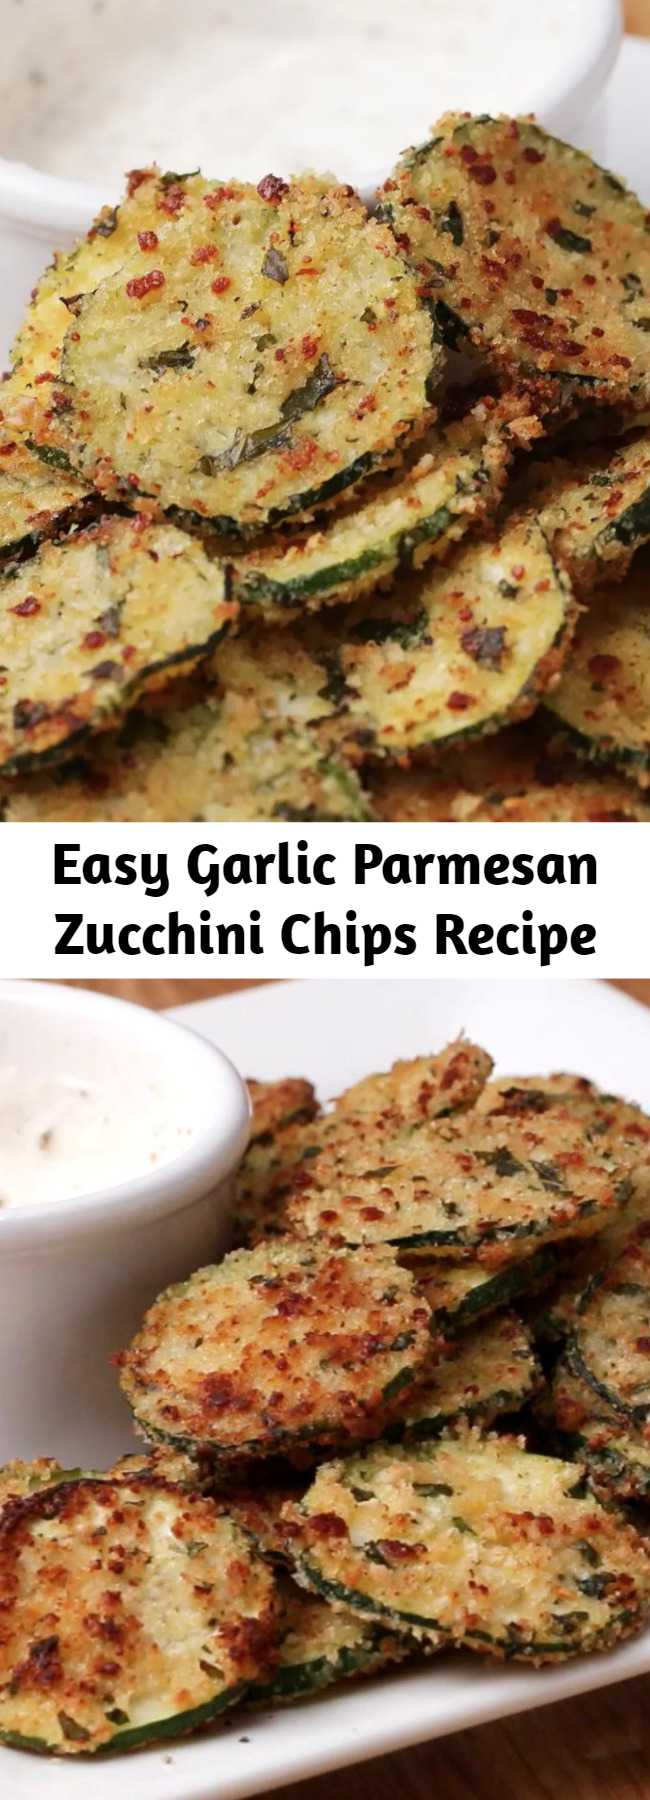 Easy Garlic Parmesan Zucchini Chips Recipe - Combine garlic, parmesan, and zucchini and you've got yourself a totally delicious snack.